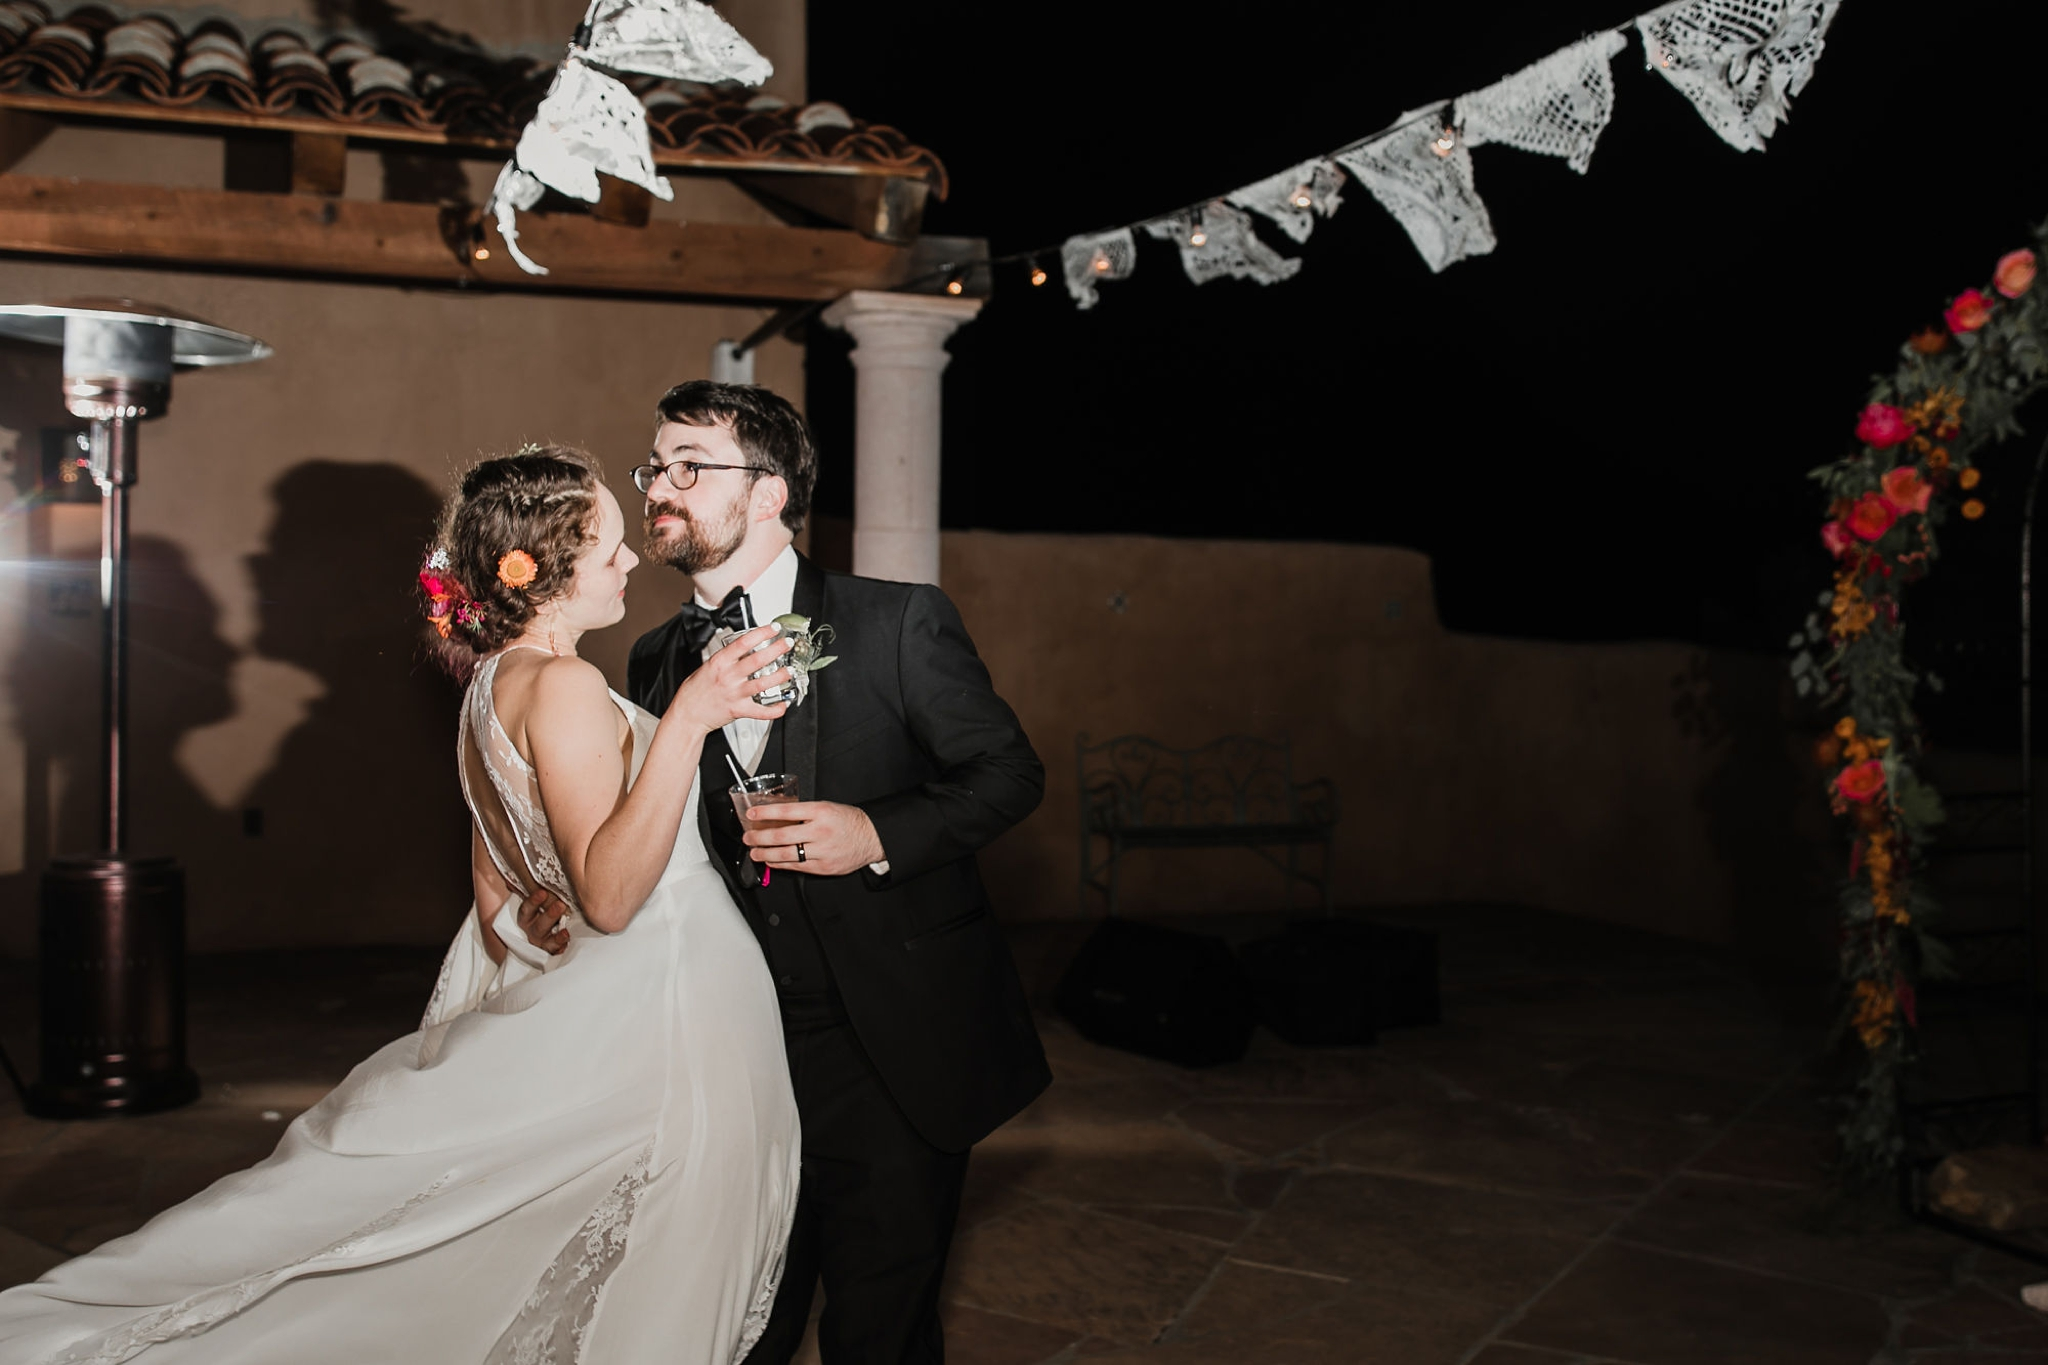 Alicia+lucia+photography+-+albuquerque+wedding+photographer+-+santa+fe+wedding+photography+-+new+mexico+wedding+photographer+-+new+mexico+wedding+-+engagement+-+santa+fe+wedding+-+hacienda+dona+andrea+-+hacienda+dona+andrea+wedding_0111.jpg